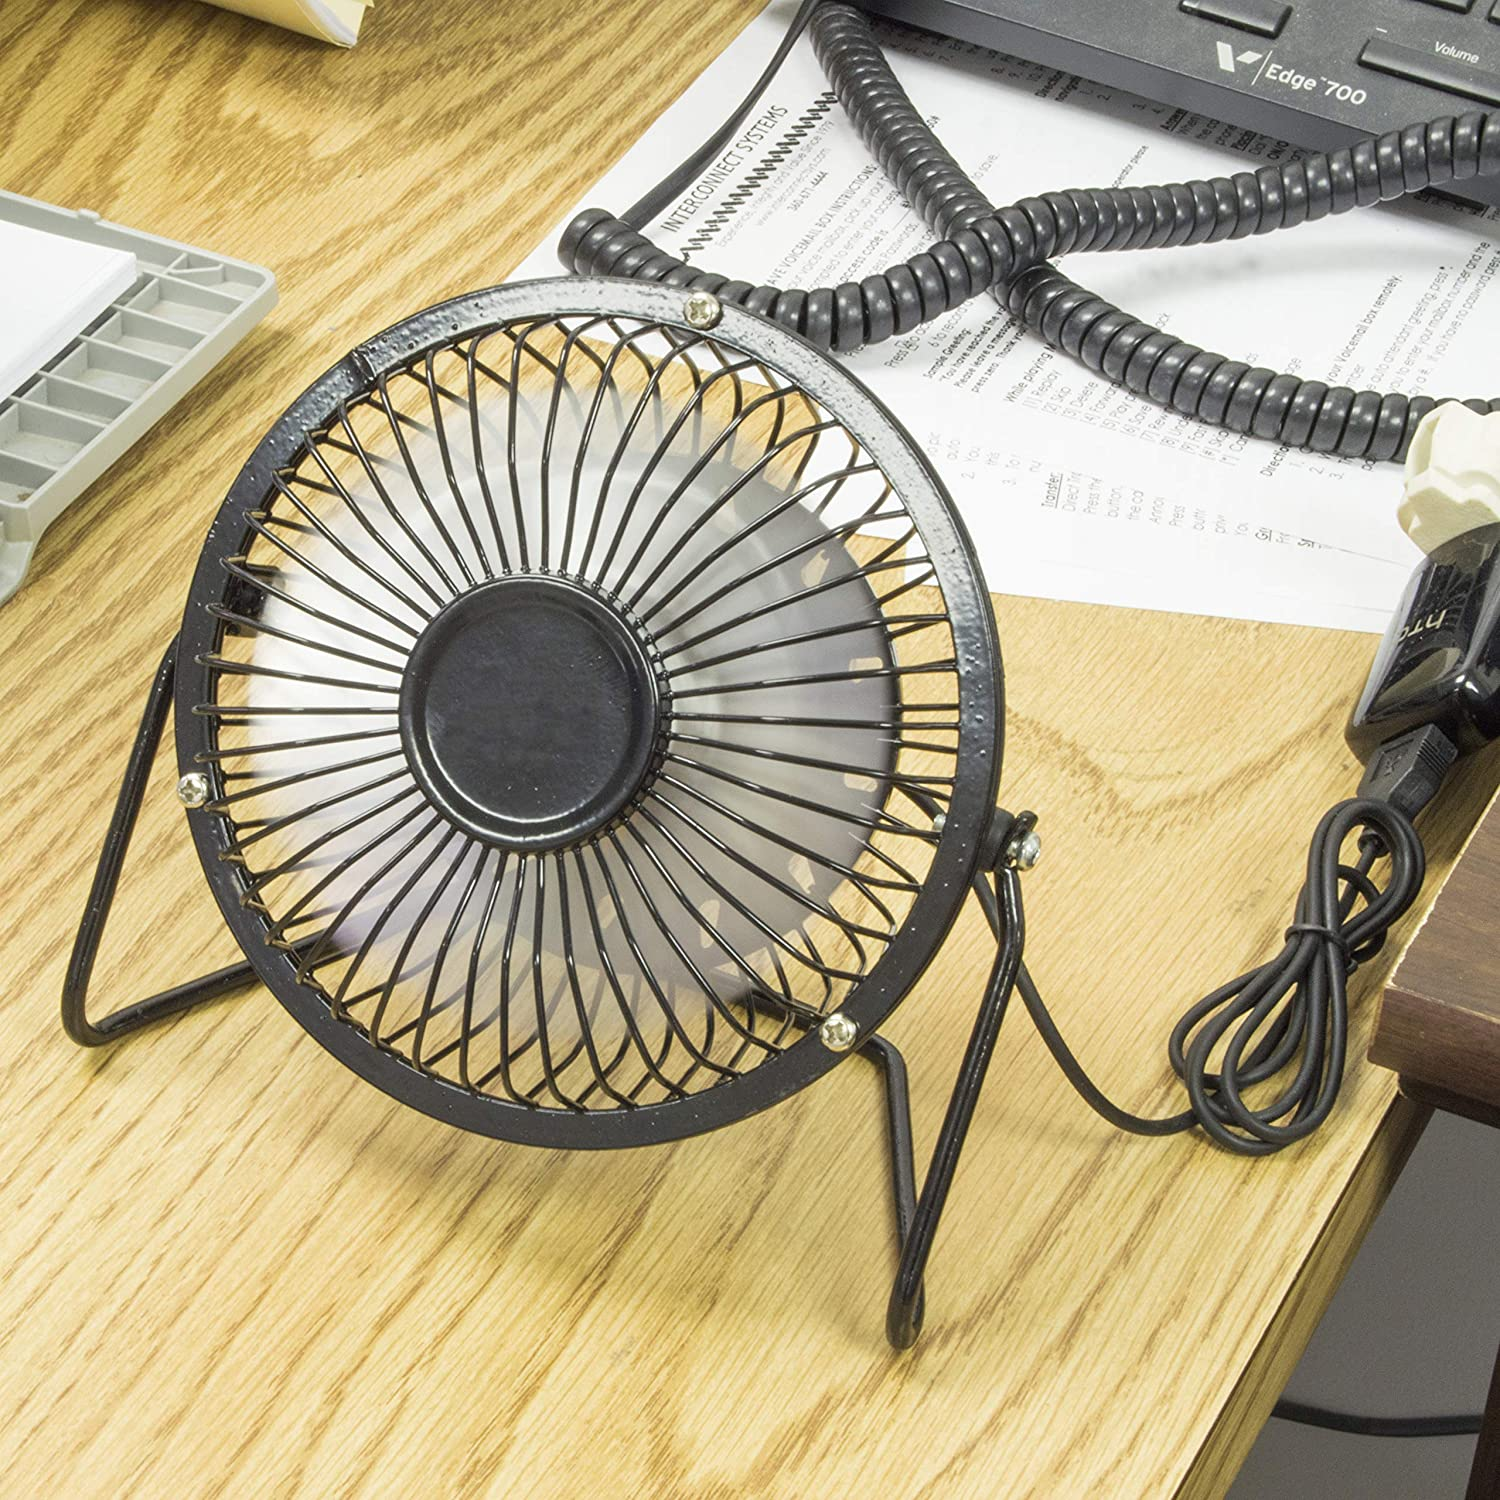 SciencePurchase 4 Angle Adjustable Mini USB Powered Fan Perfect Size for a Desktop